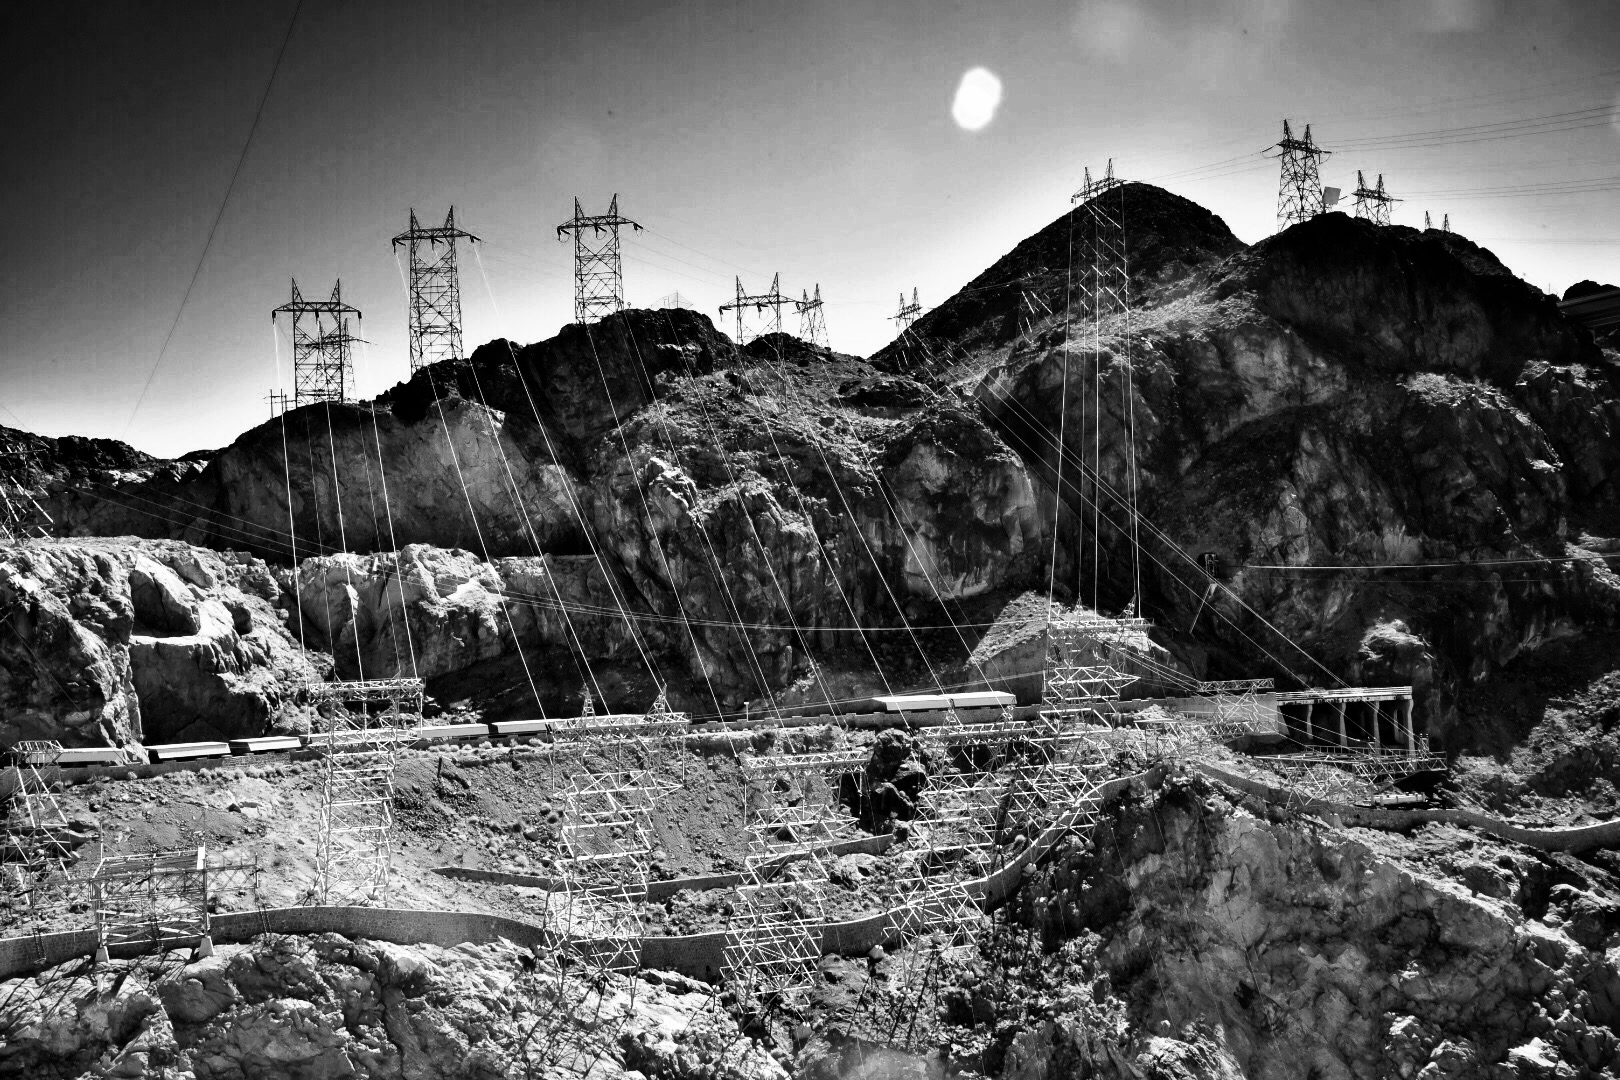 High Tension Juice Heading for LA, Hoover Dam | WILLIAM C. CRAWFORD  Digital photography, 2015